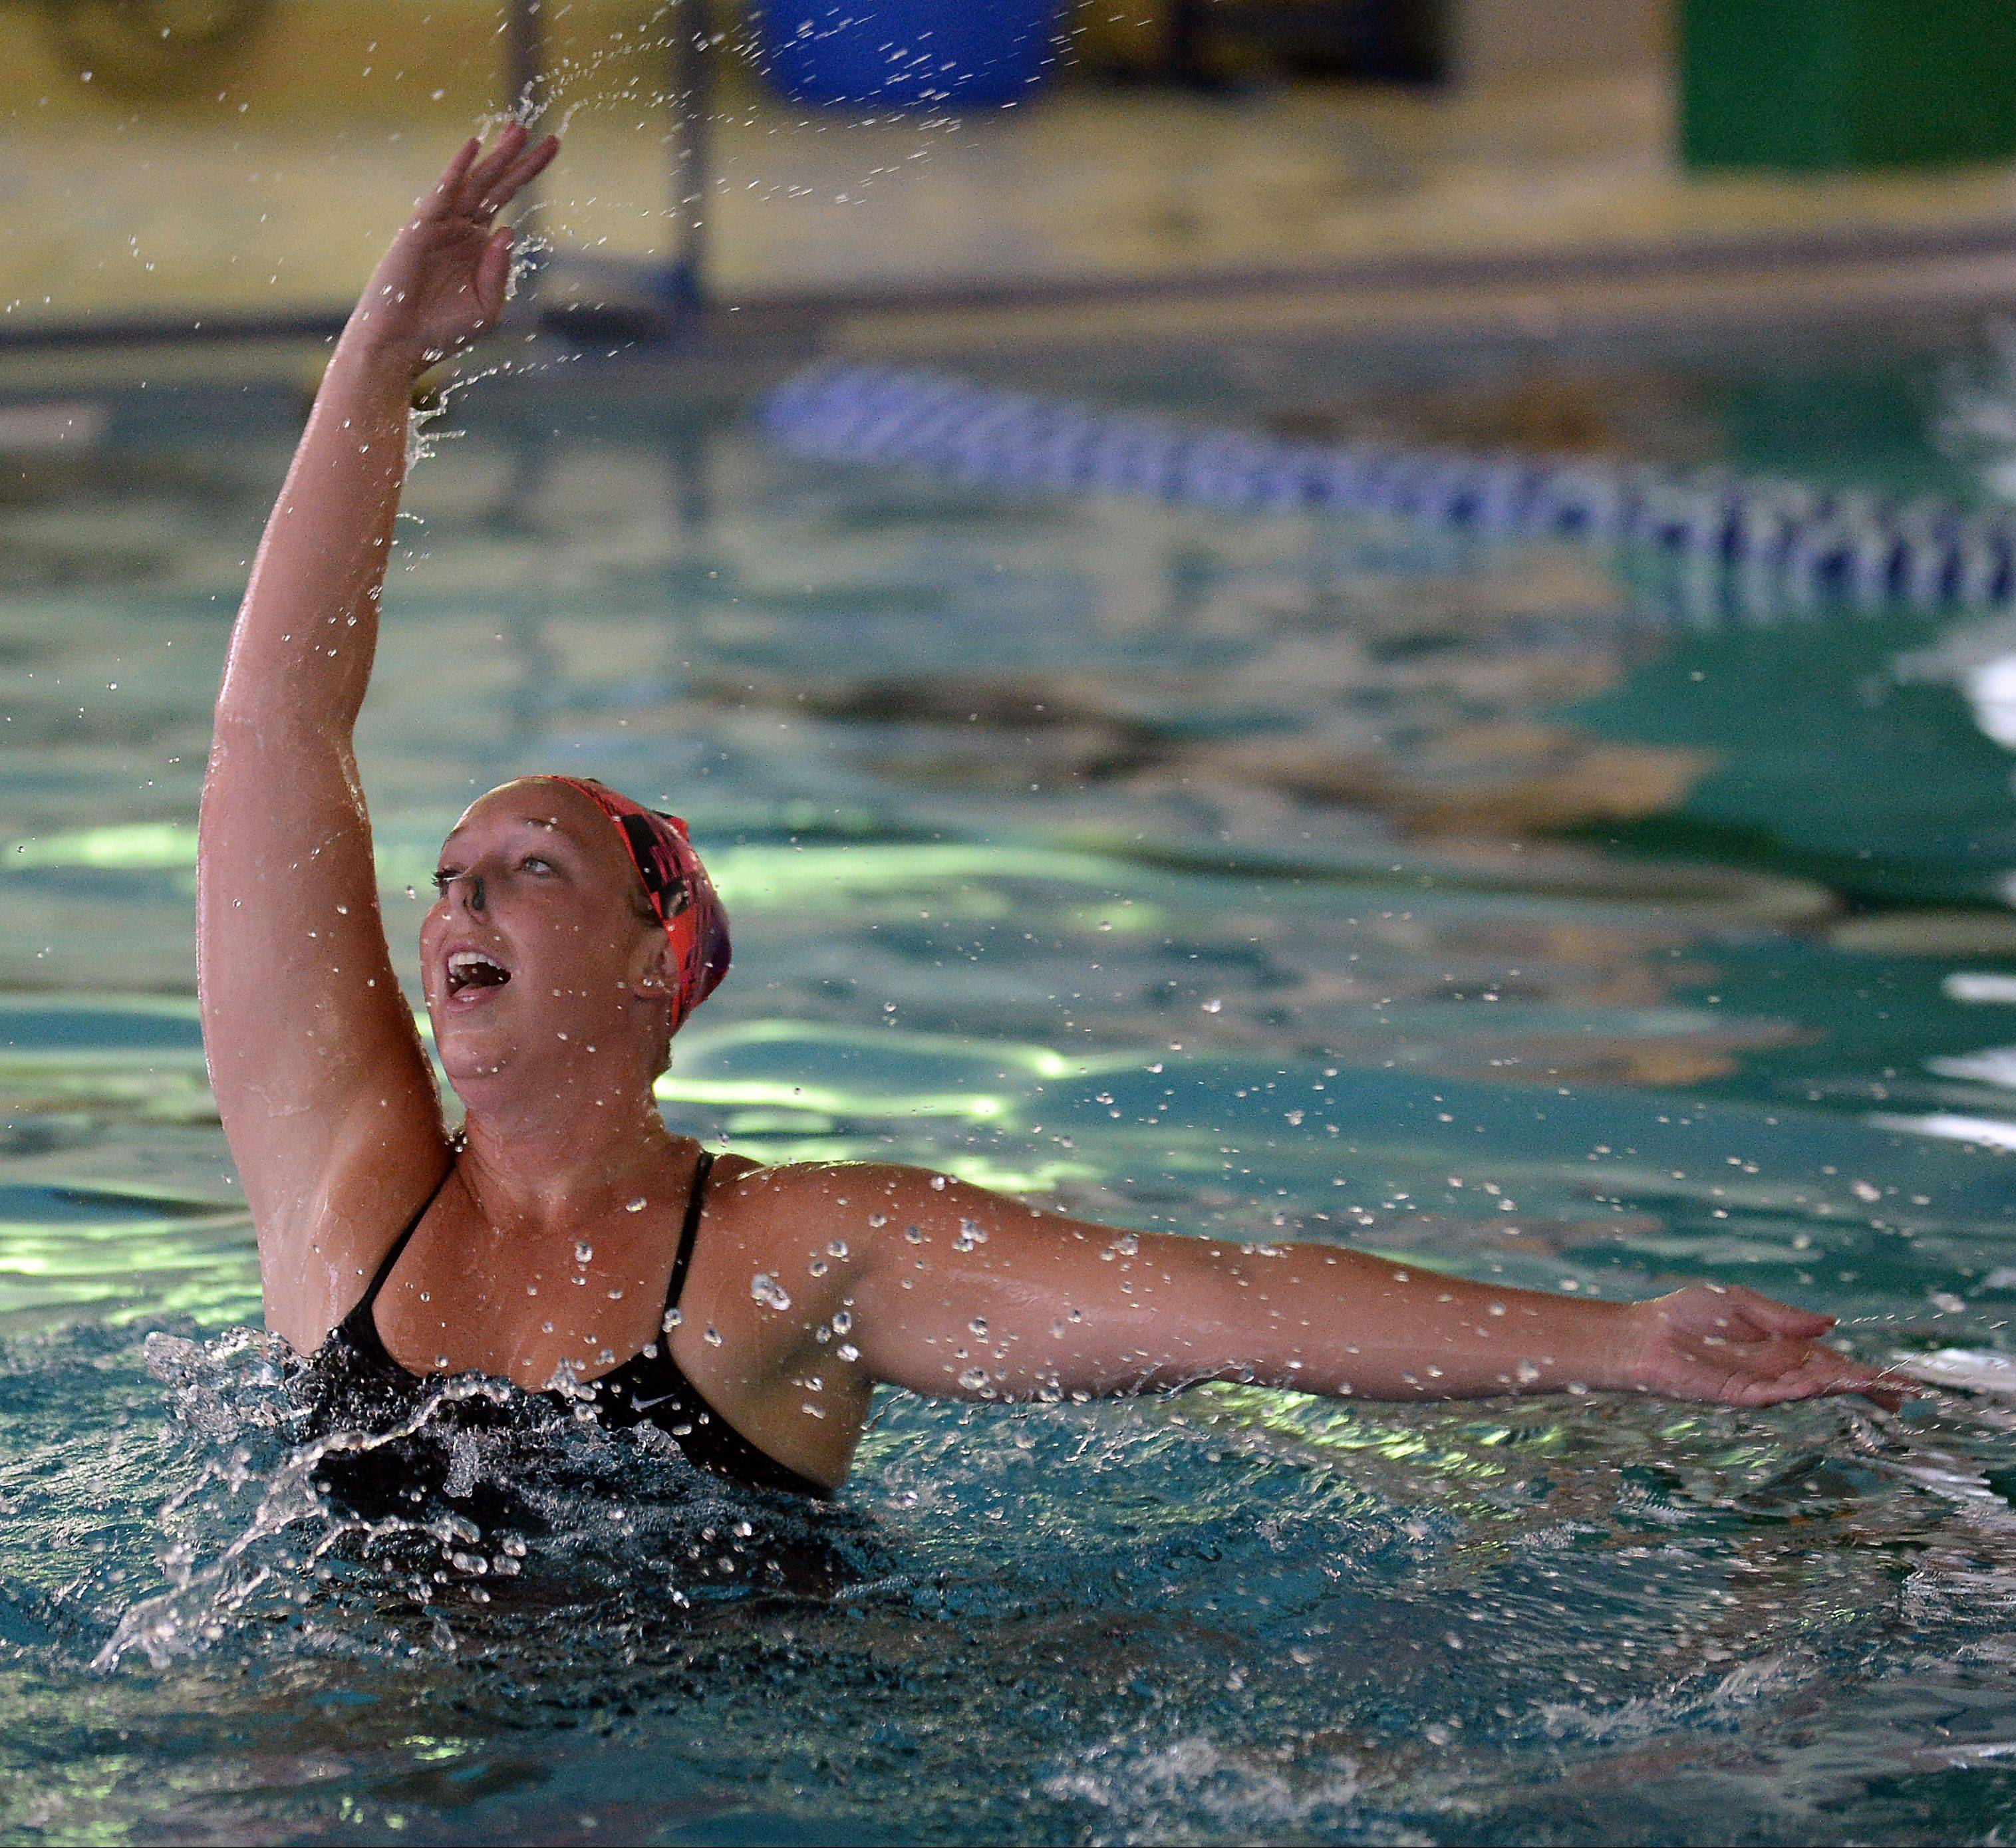 Heather Dueball, 26, of Arlington Heights practices her synchronized swimming routine as part of the AquaSprites at the Lattof YMCA.